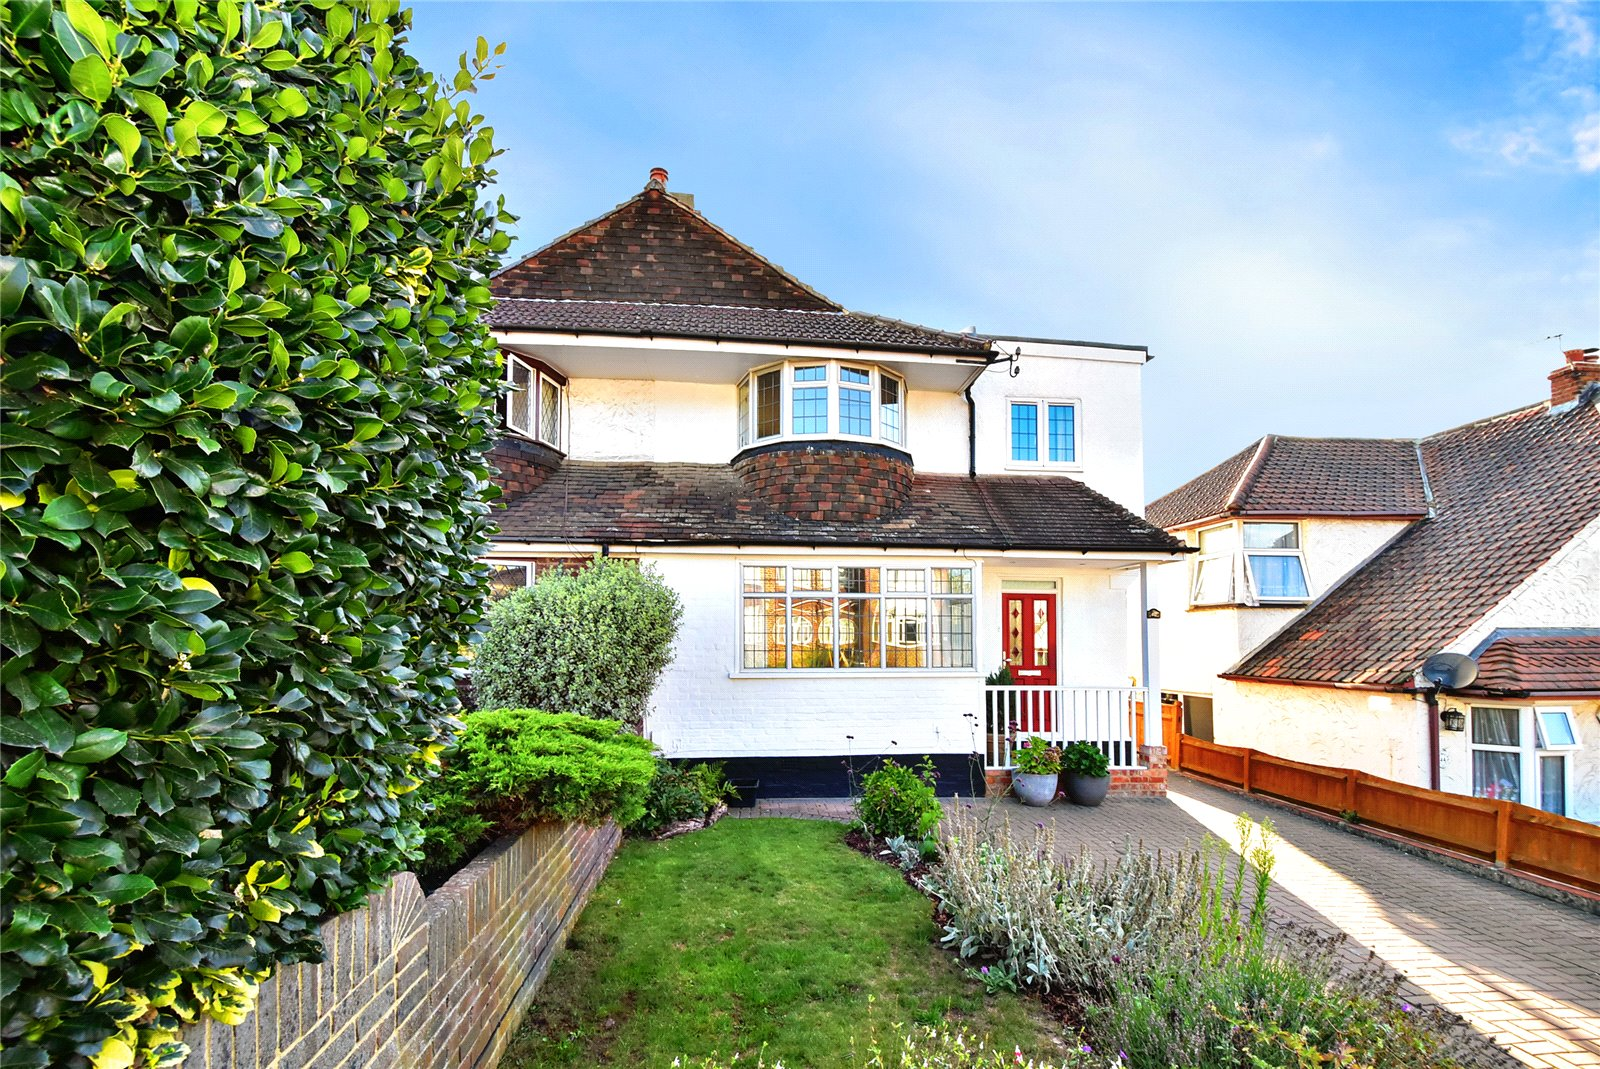 Stanham Road, West Dartford, Kent, DA1